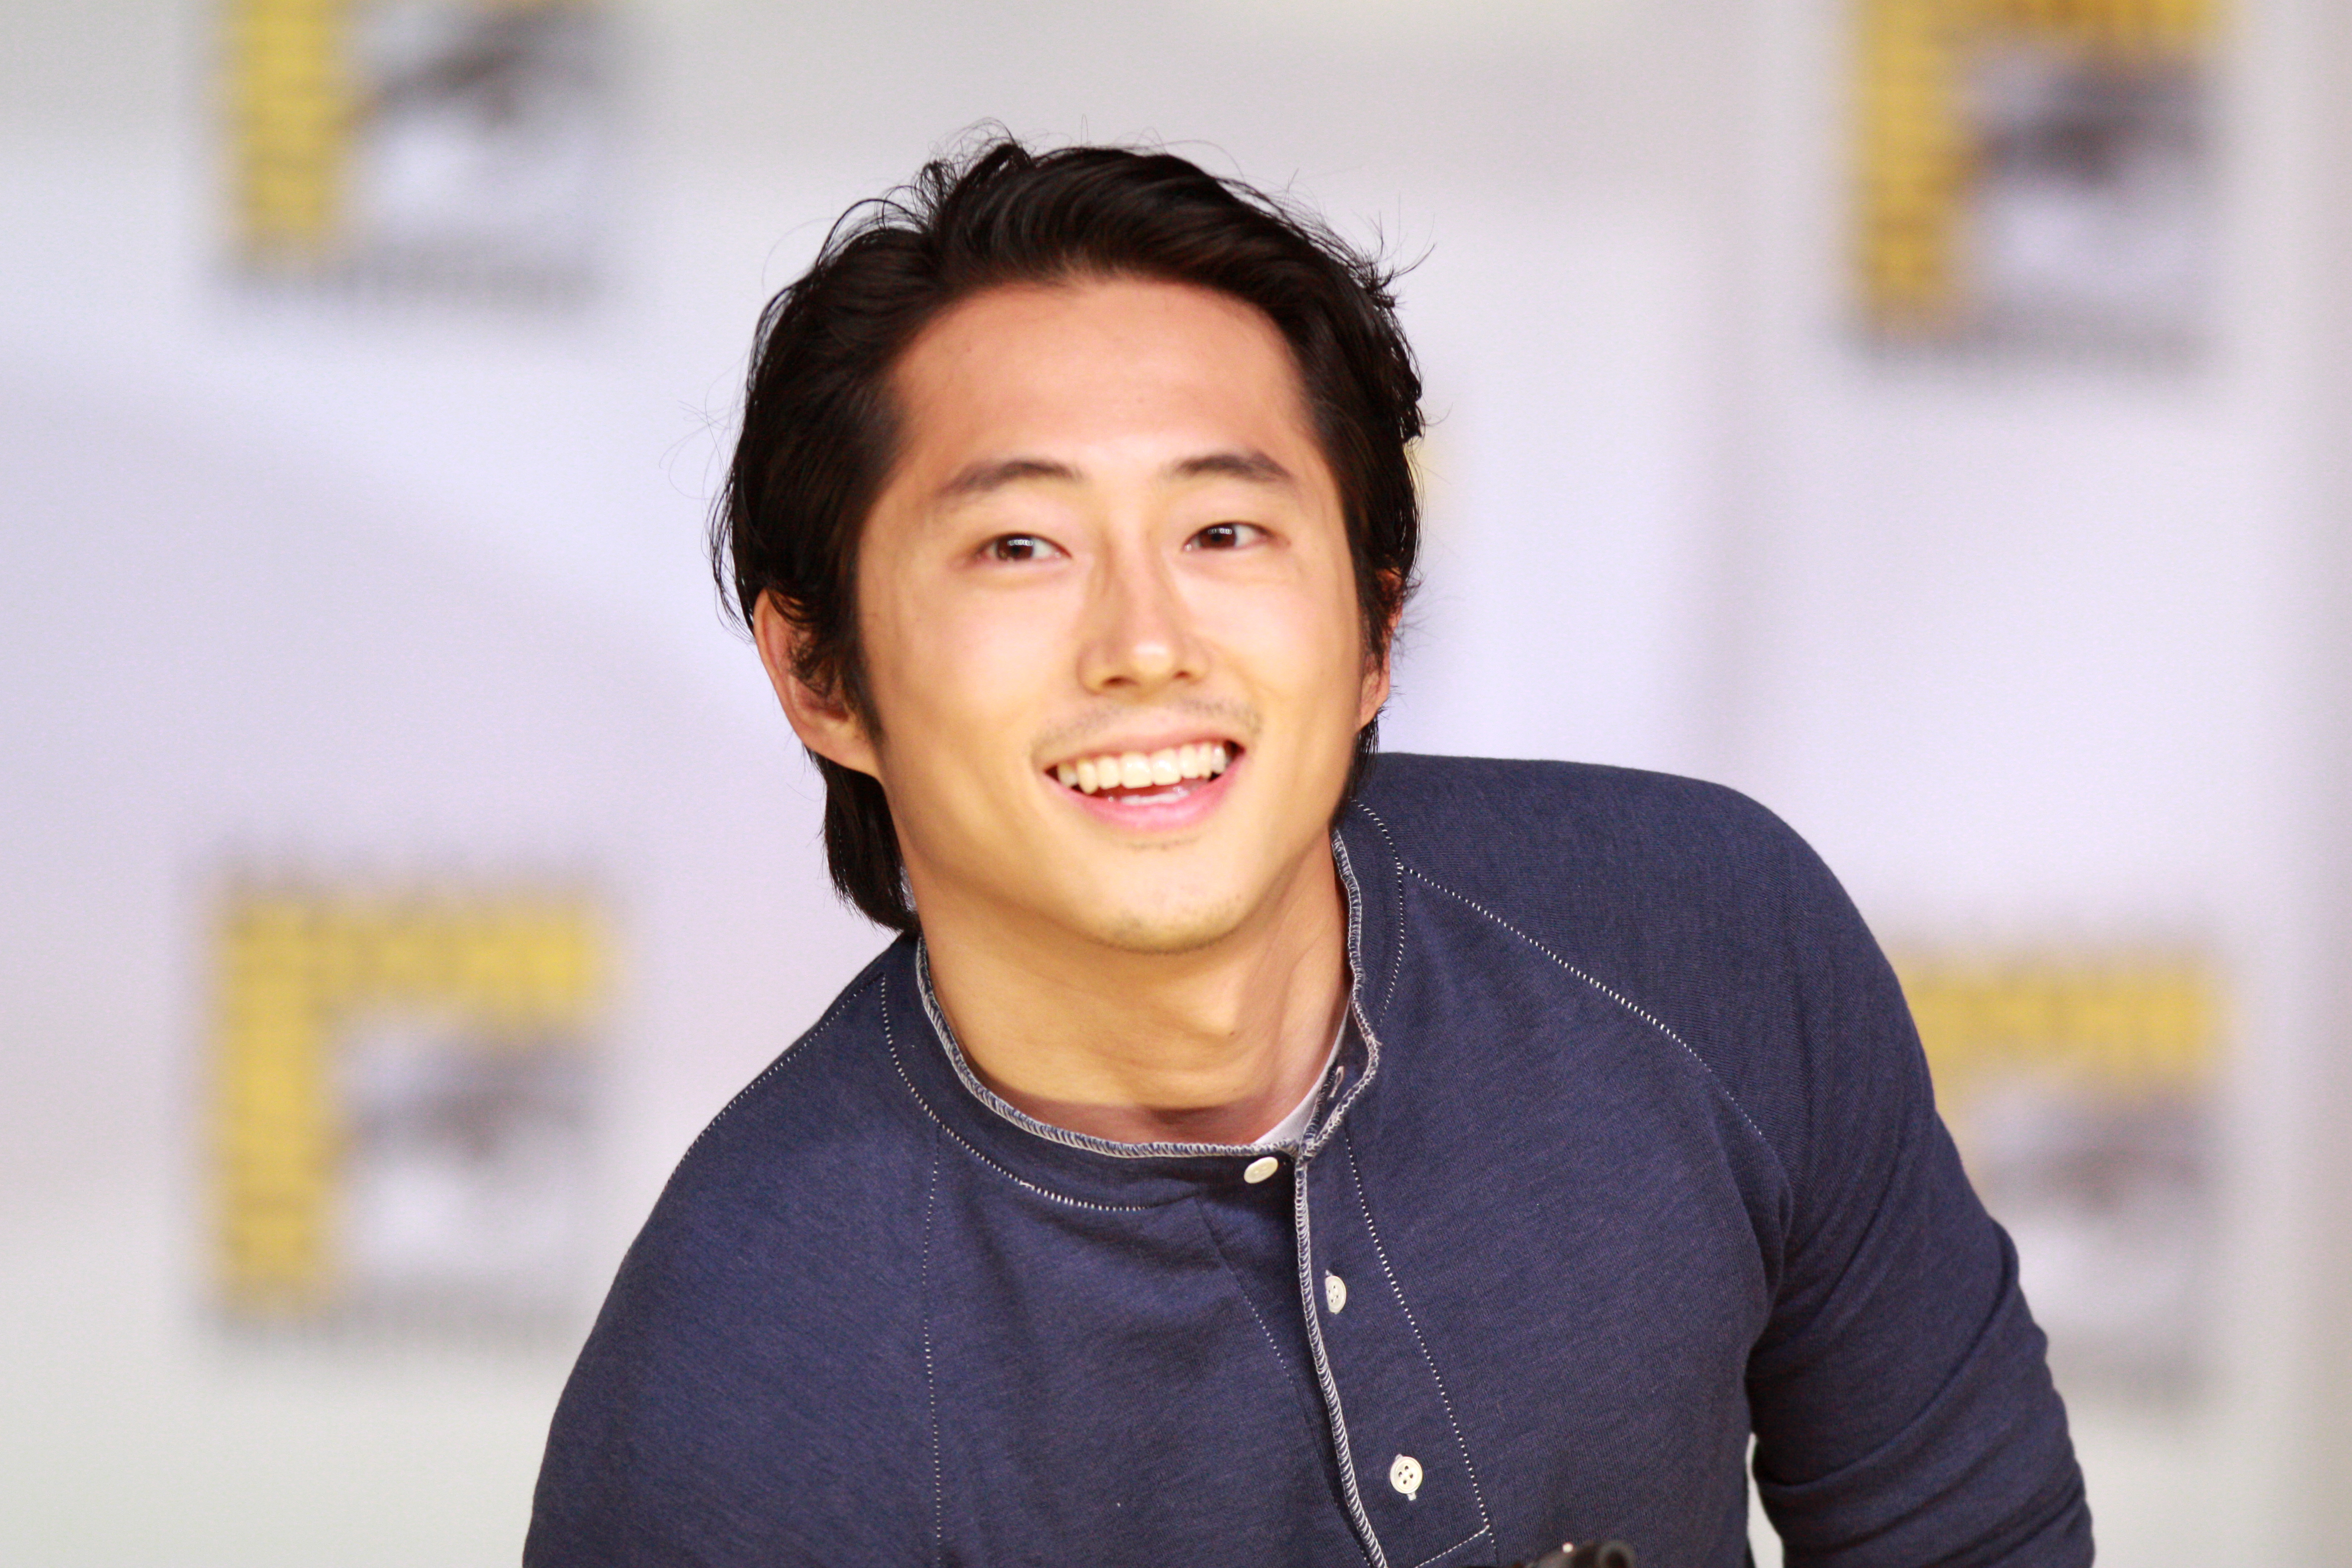 Steven Yeun earned a  million dollar salary, leaving the net worth at 1.5 million in 2017